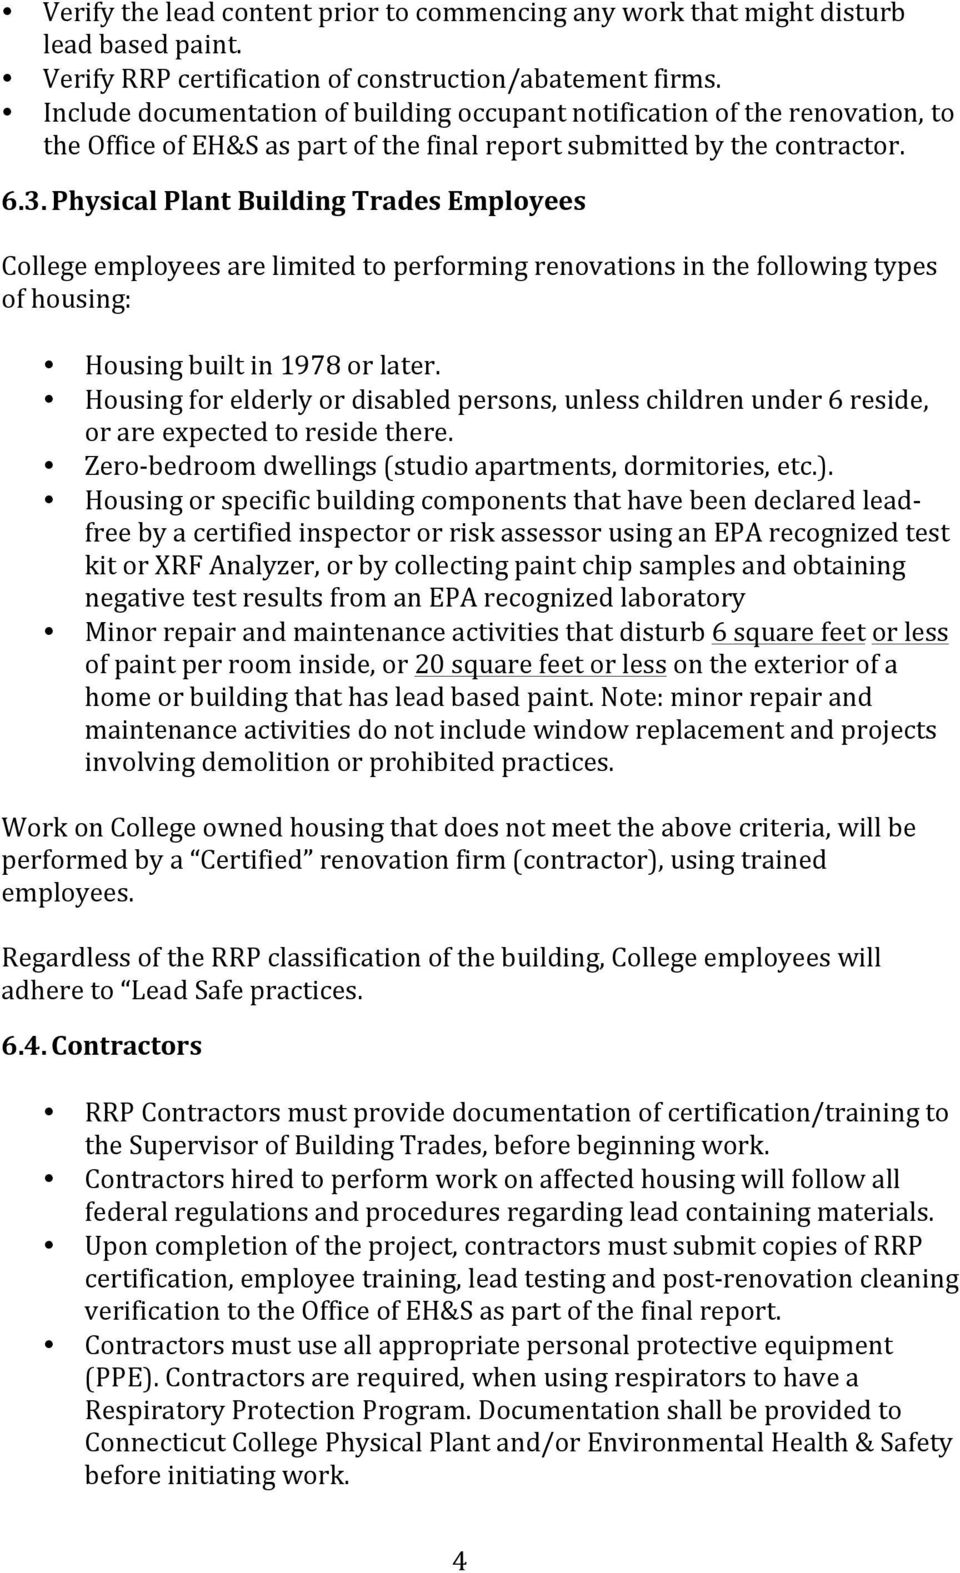 Physical Plant Building Trades Employees College employees are limited to performing renovations in the following types of housing: Housing built in 1978 or later.